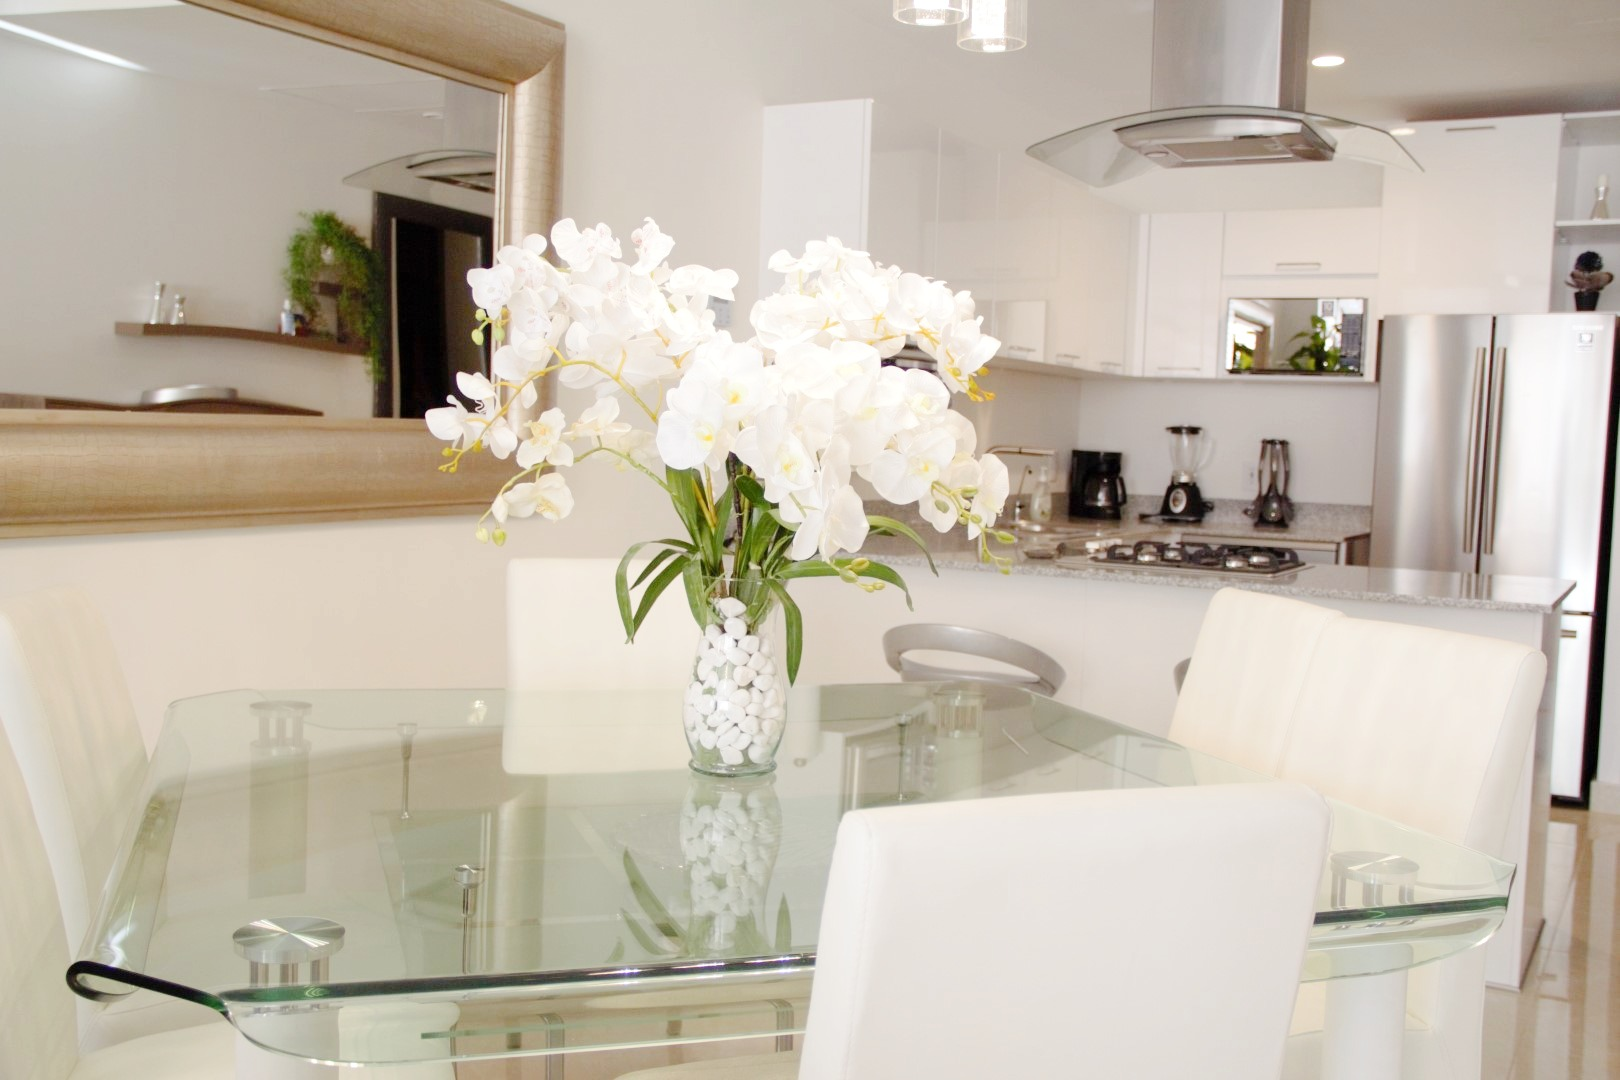 Beautiful bright white decor.